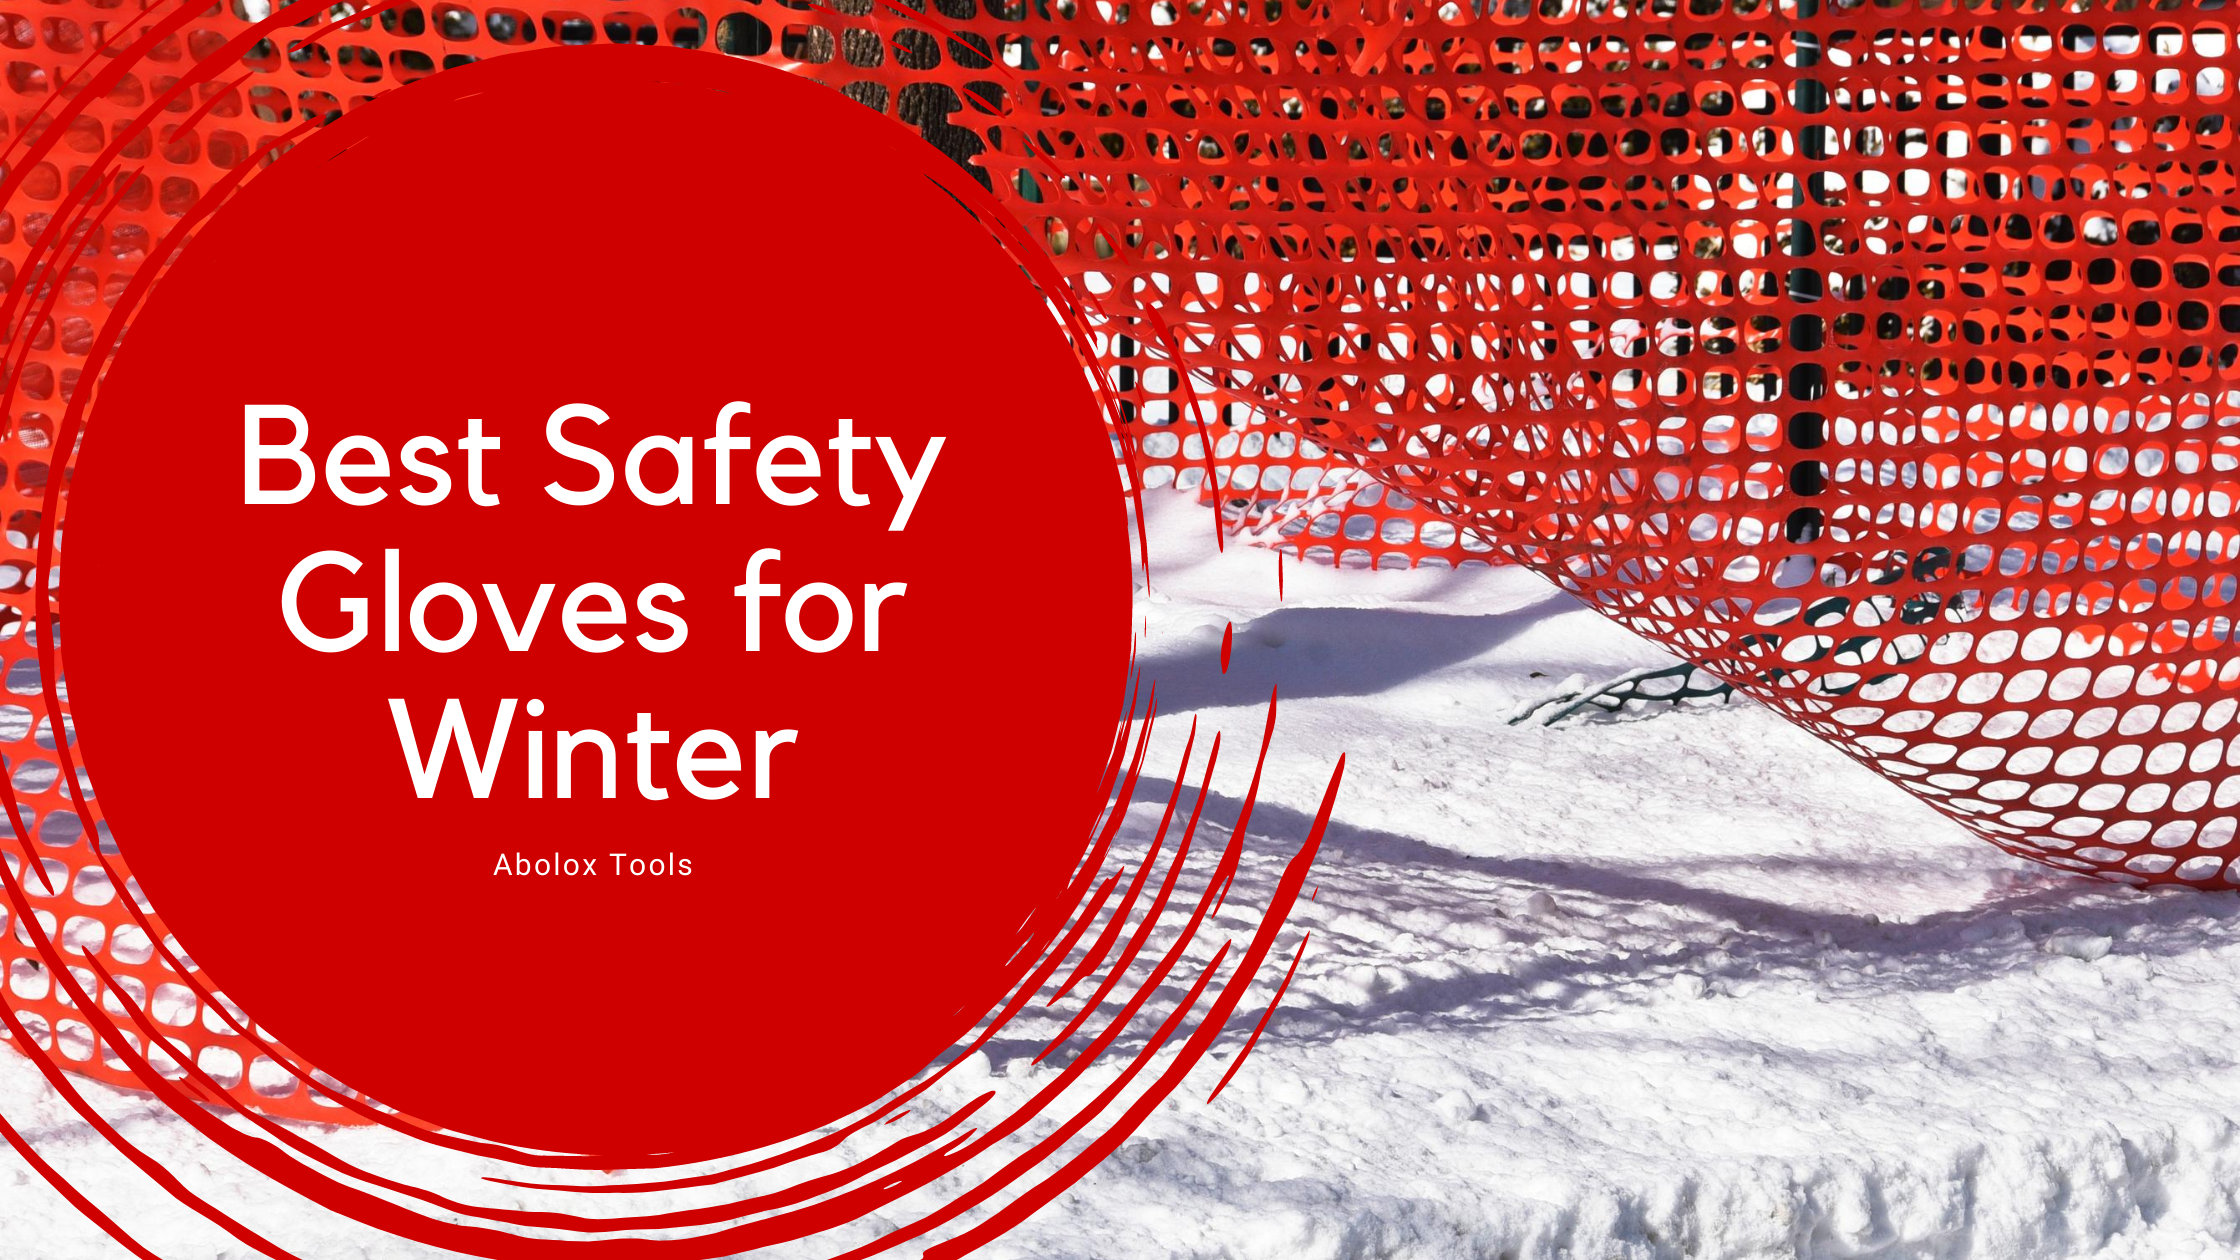 Best Safety Gloves for Winter